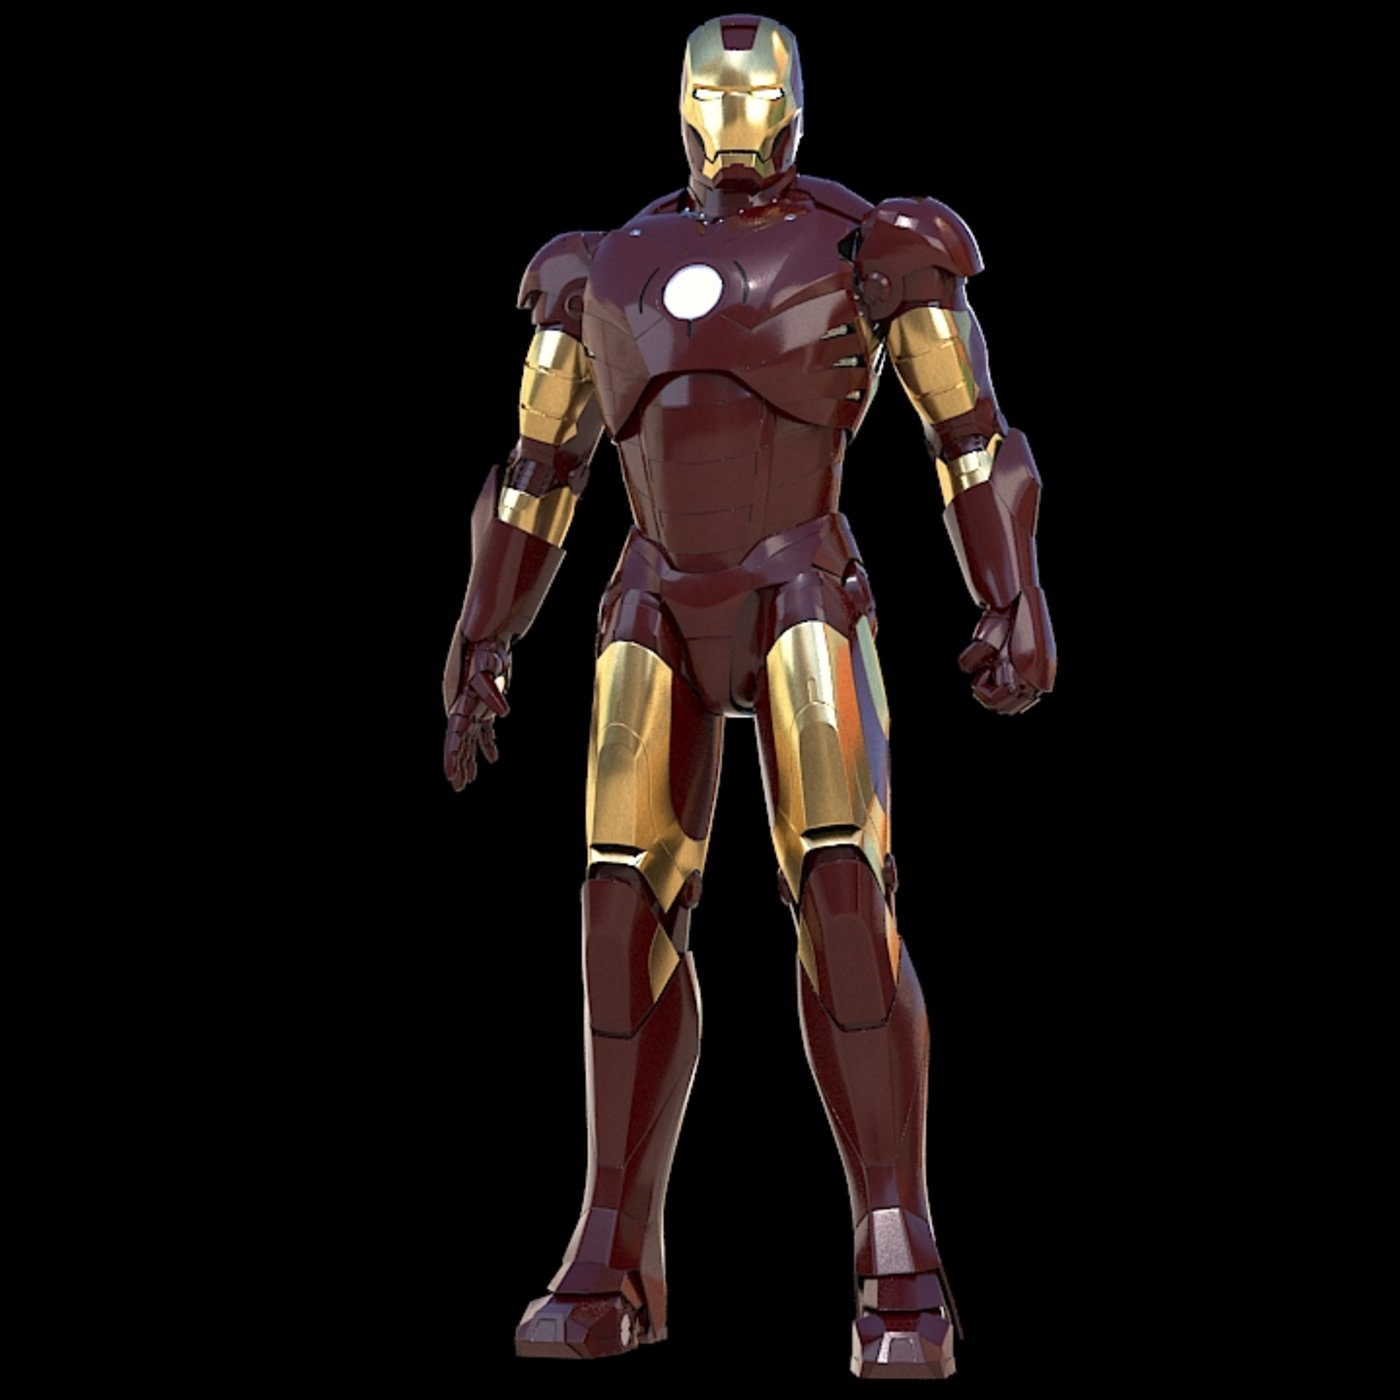 Iron Man Mark 3 Rigged Using Character Studio (Upcoming 3d Model)